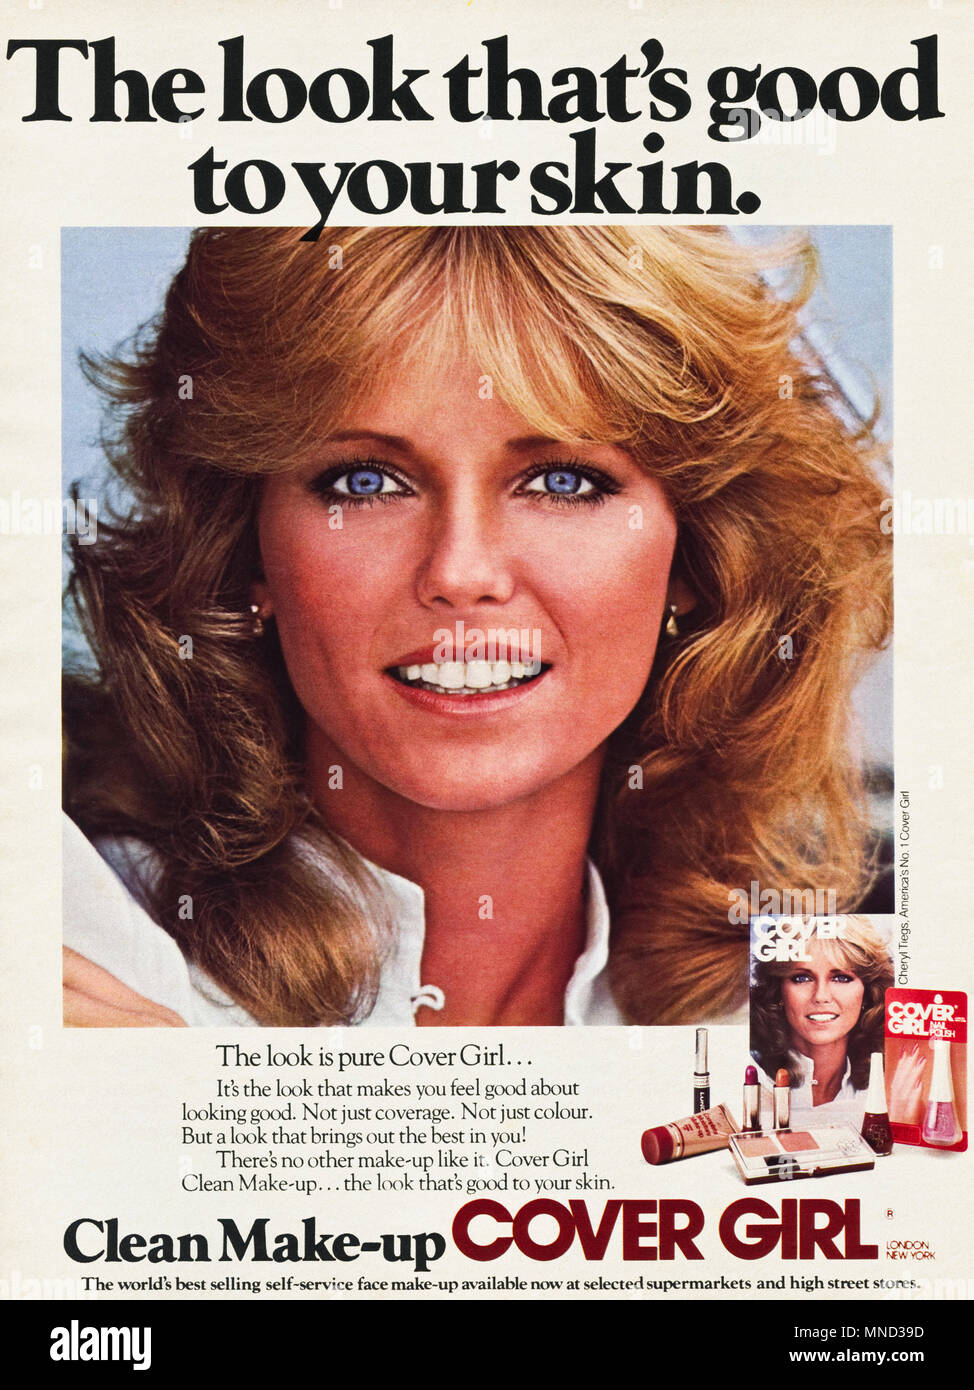 1980s original old vintage advertisement advertising Cover Girl make-up for women advert in English magazine circa 1980 - Stock Image